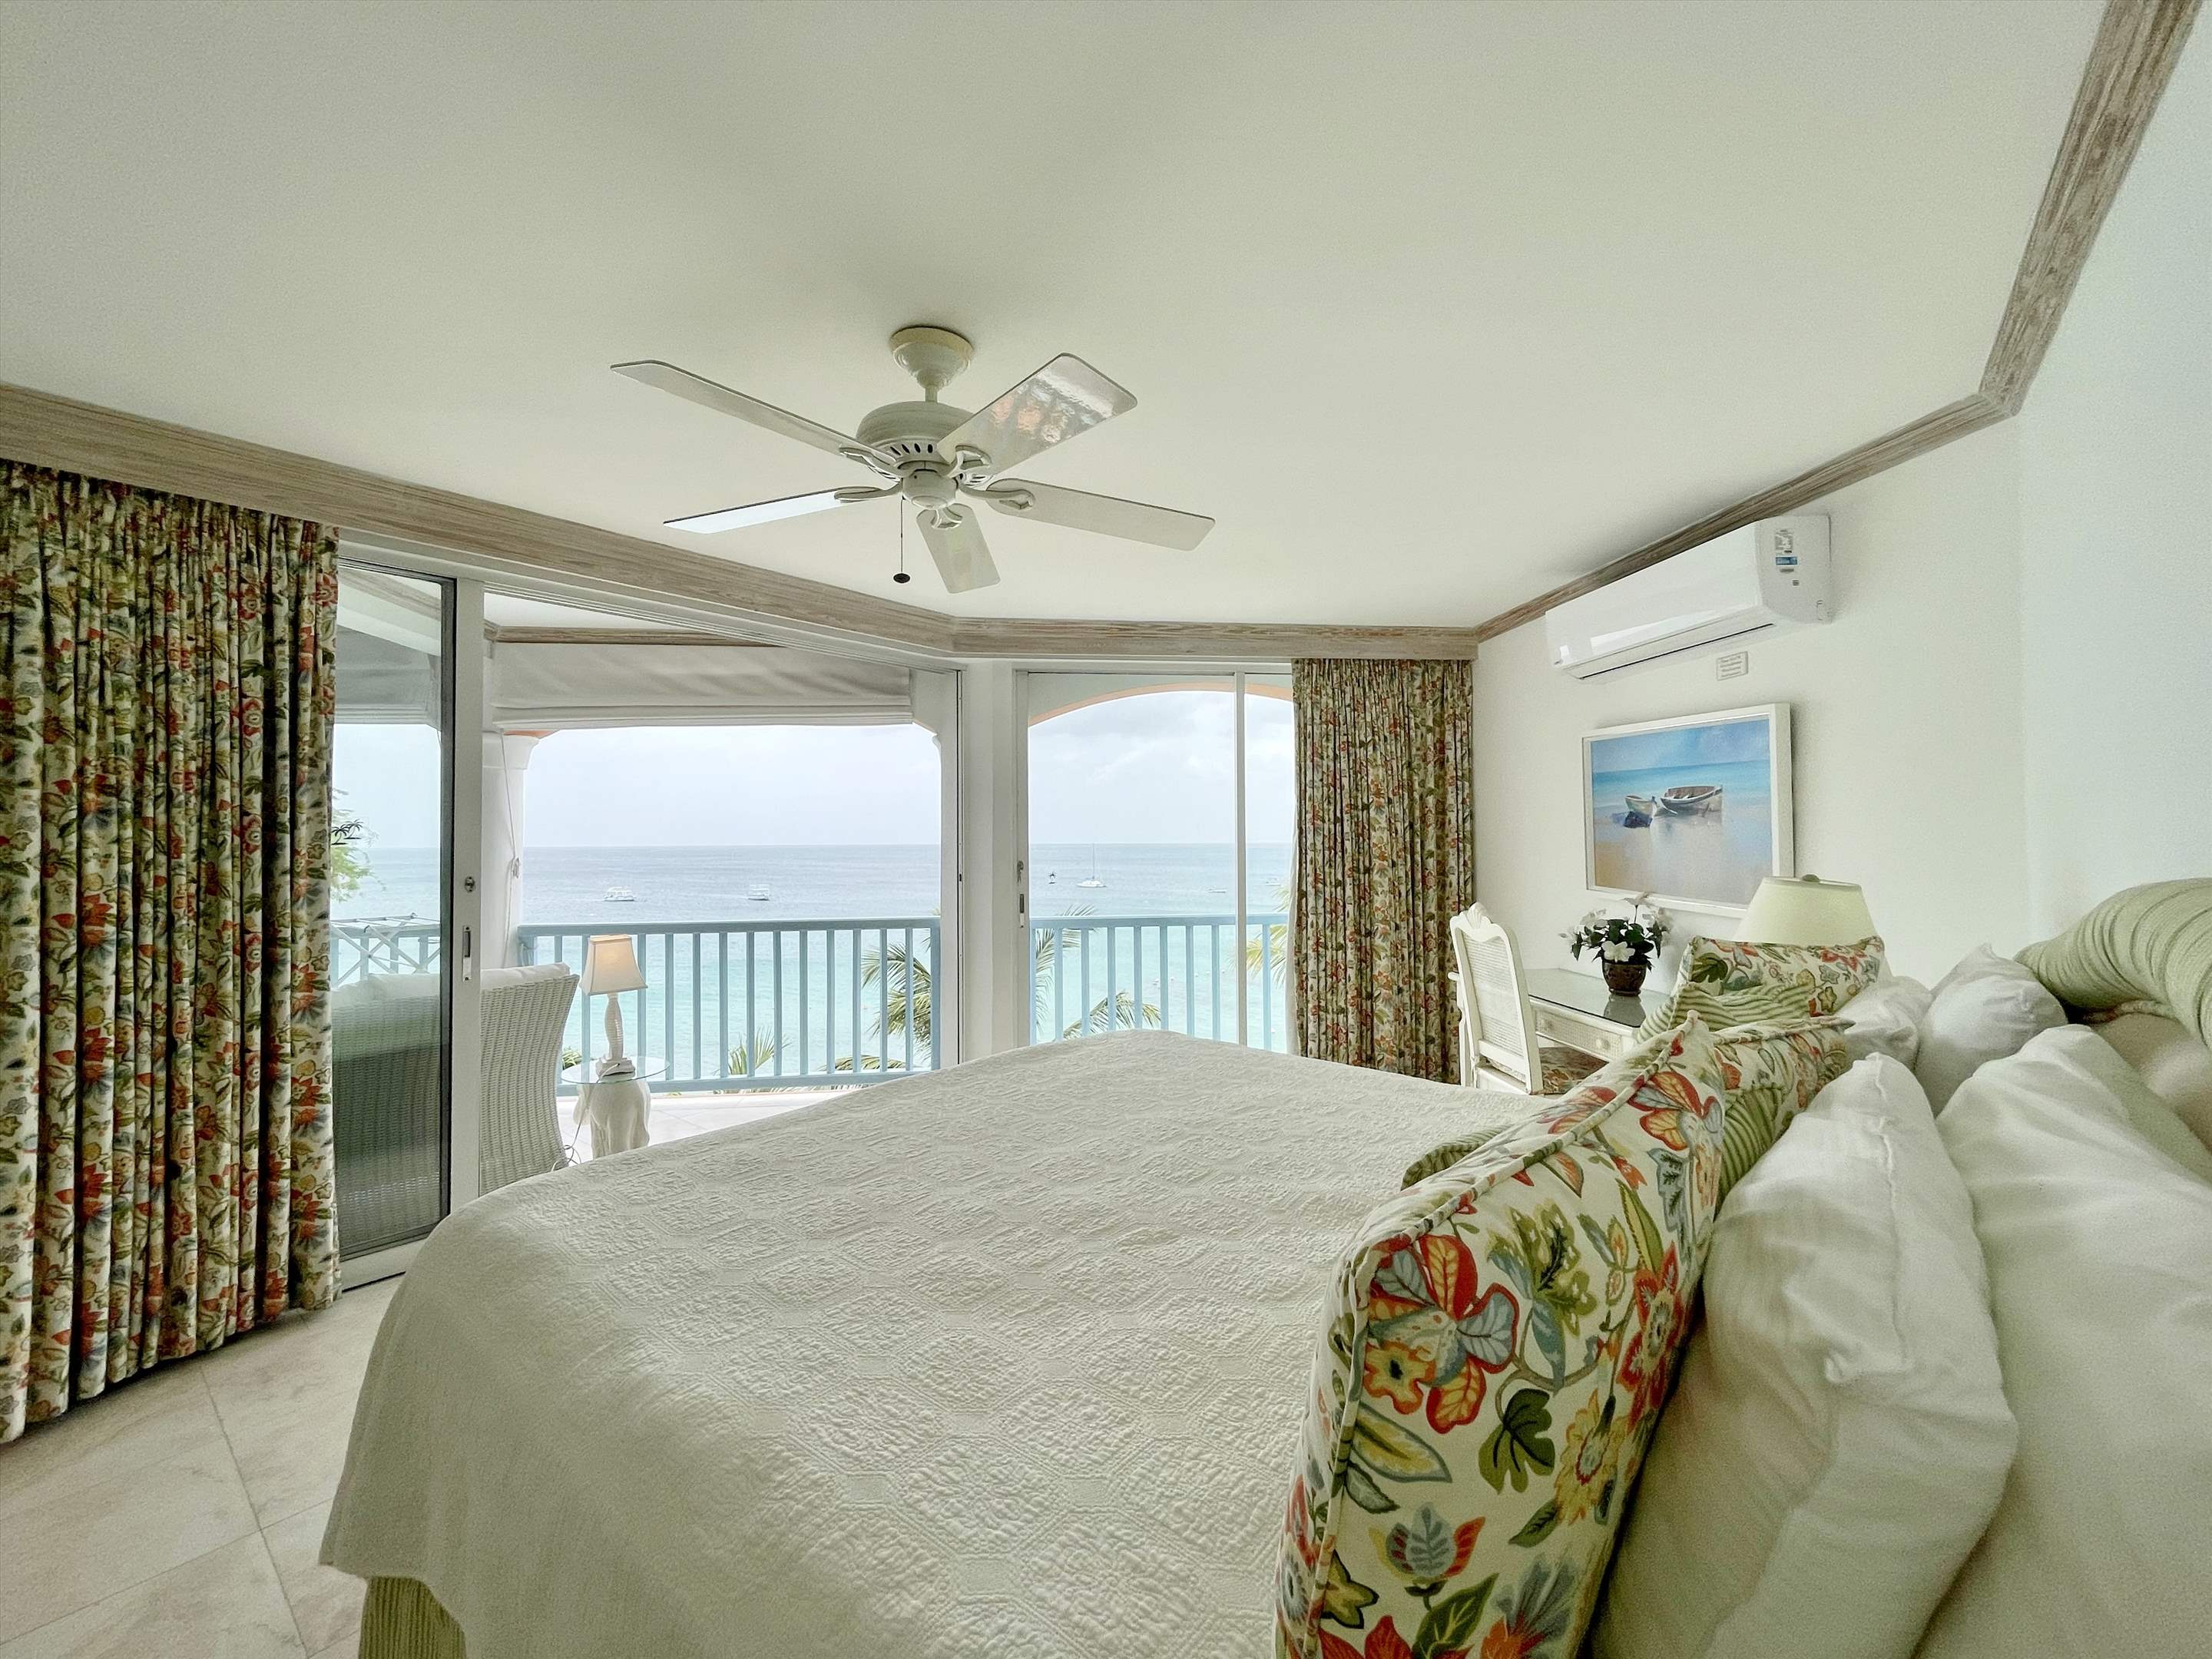 Villas on the Beach 403, 3 bedroom, 3 bedroom apartment in St. James & West Coast, Barbados Photo #10